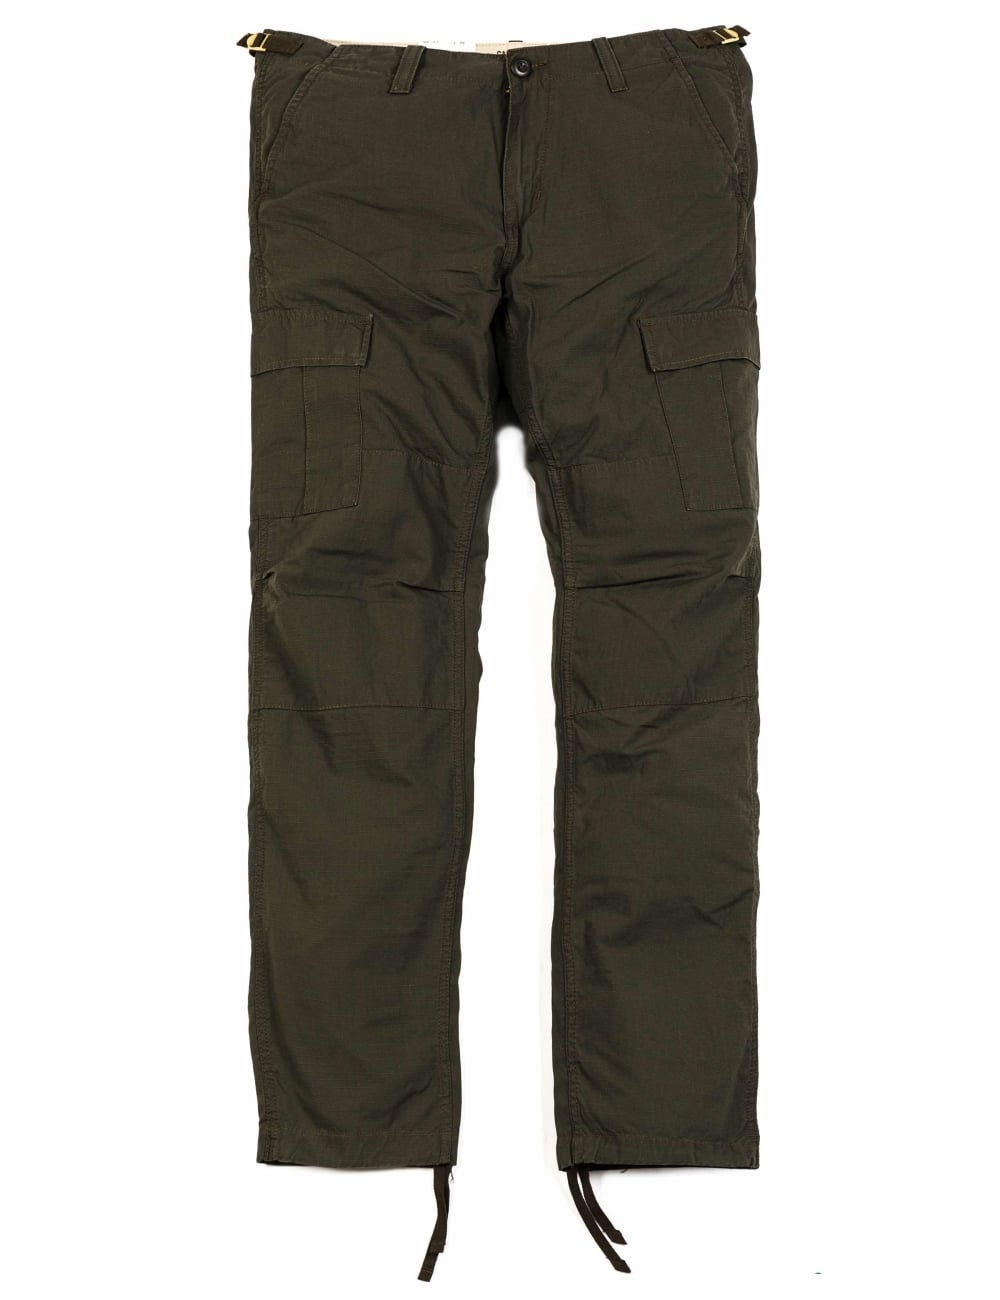 fa8f4d6be7 Carhartt WIP Aviation Cargo Pant - Cypress - Clothing from Fat ...